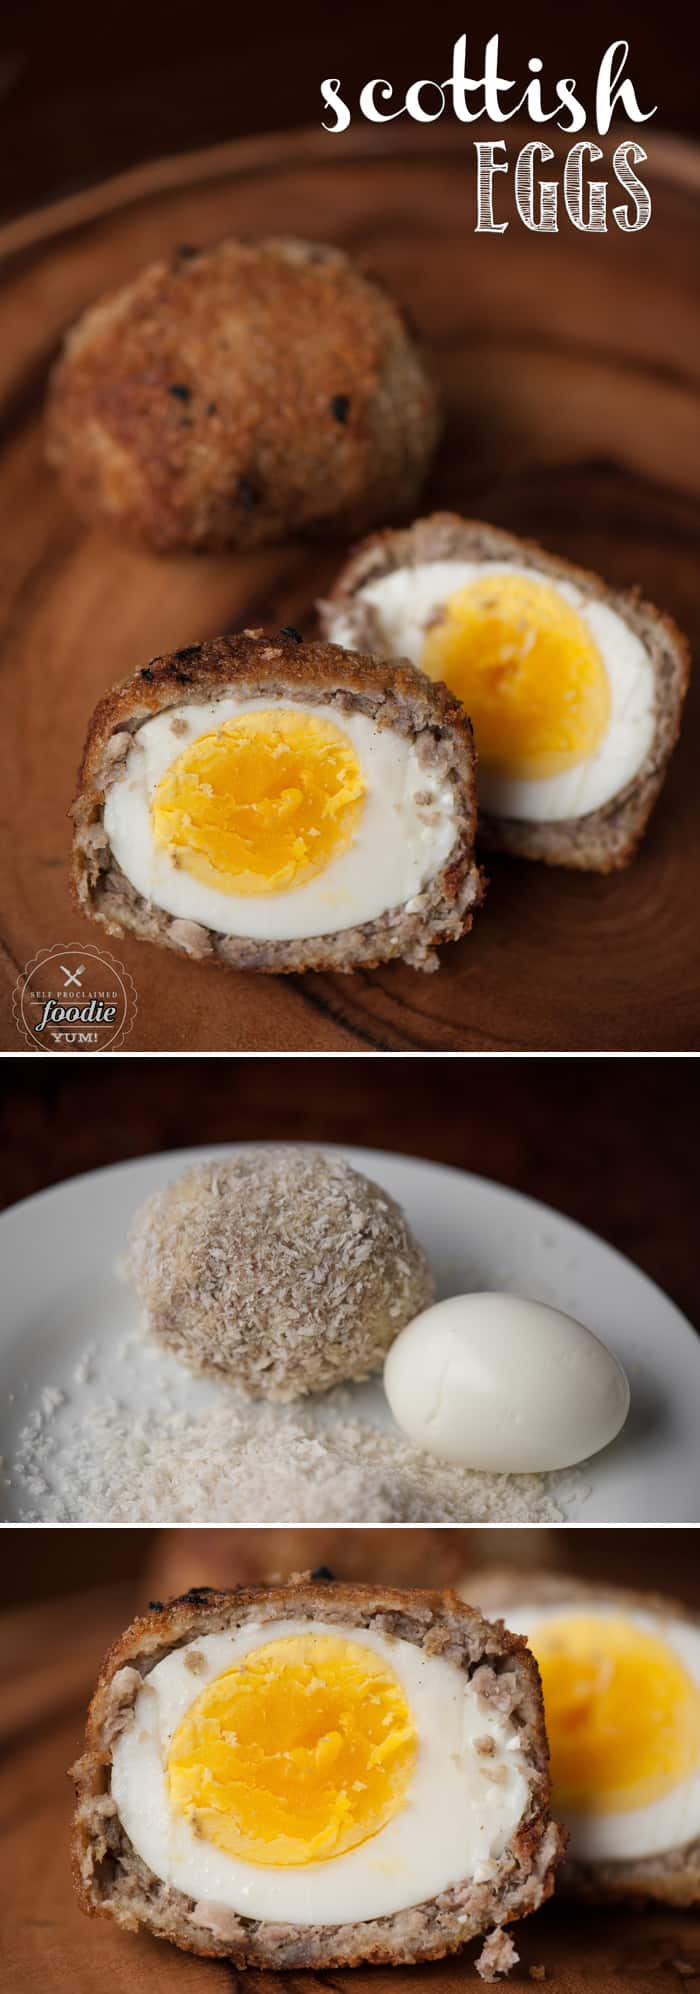 Scottish Eggs are a delicious take on breakfast. Egg wrapped in sage breakfast sausage, then dipped in egg, and then fried? Yes please.